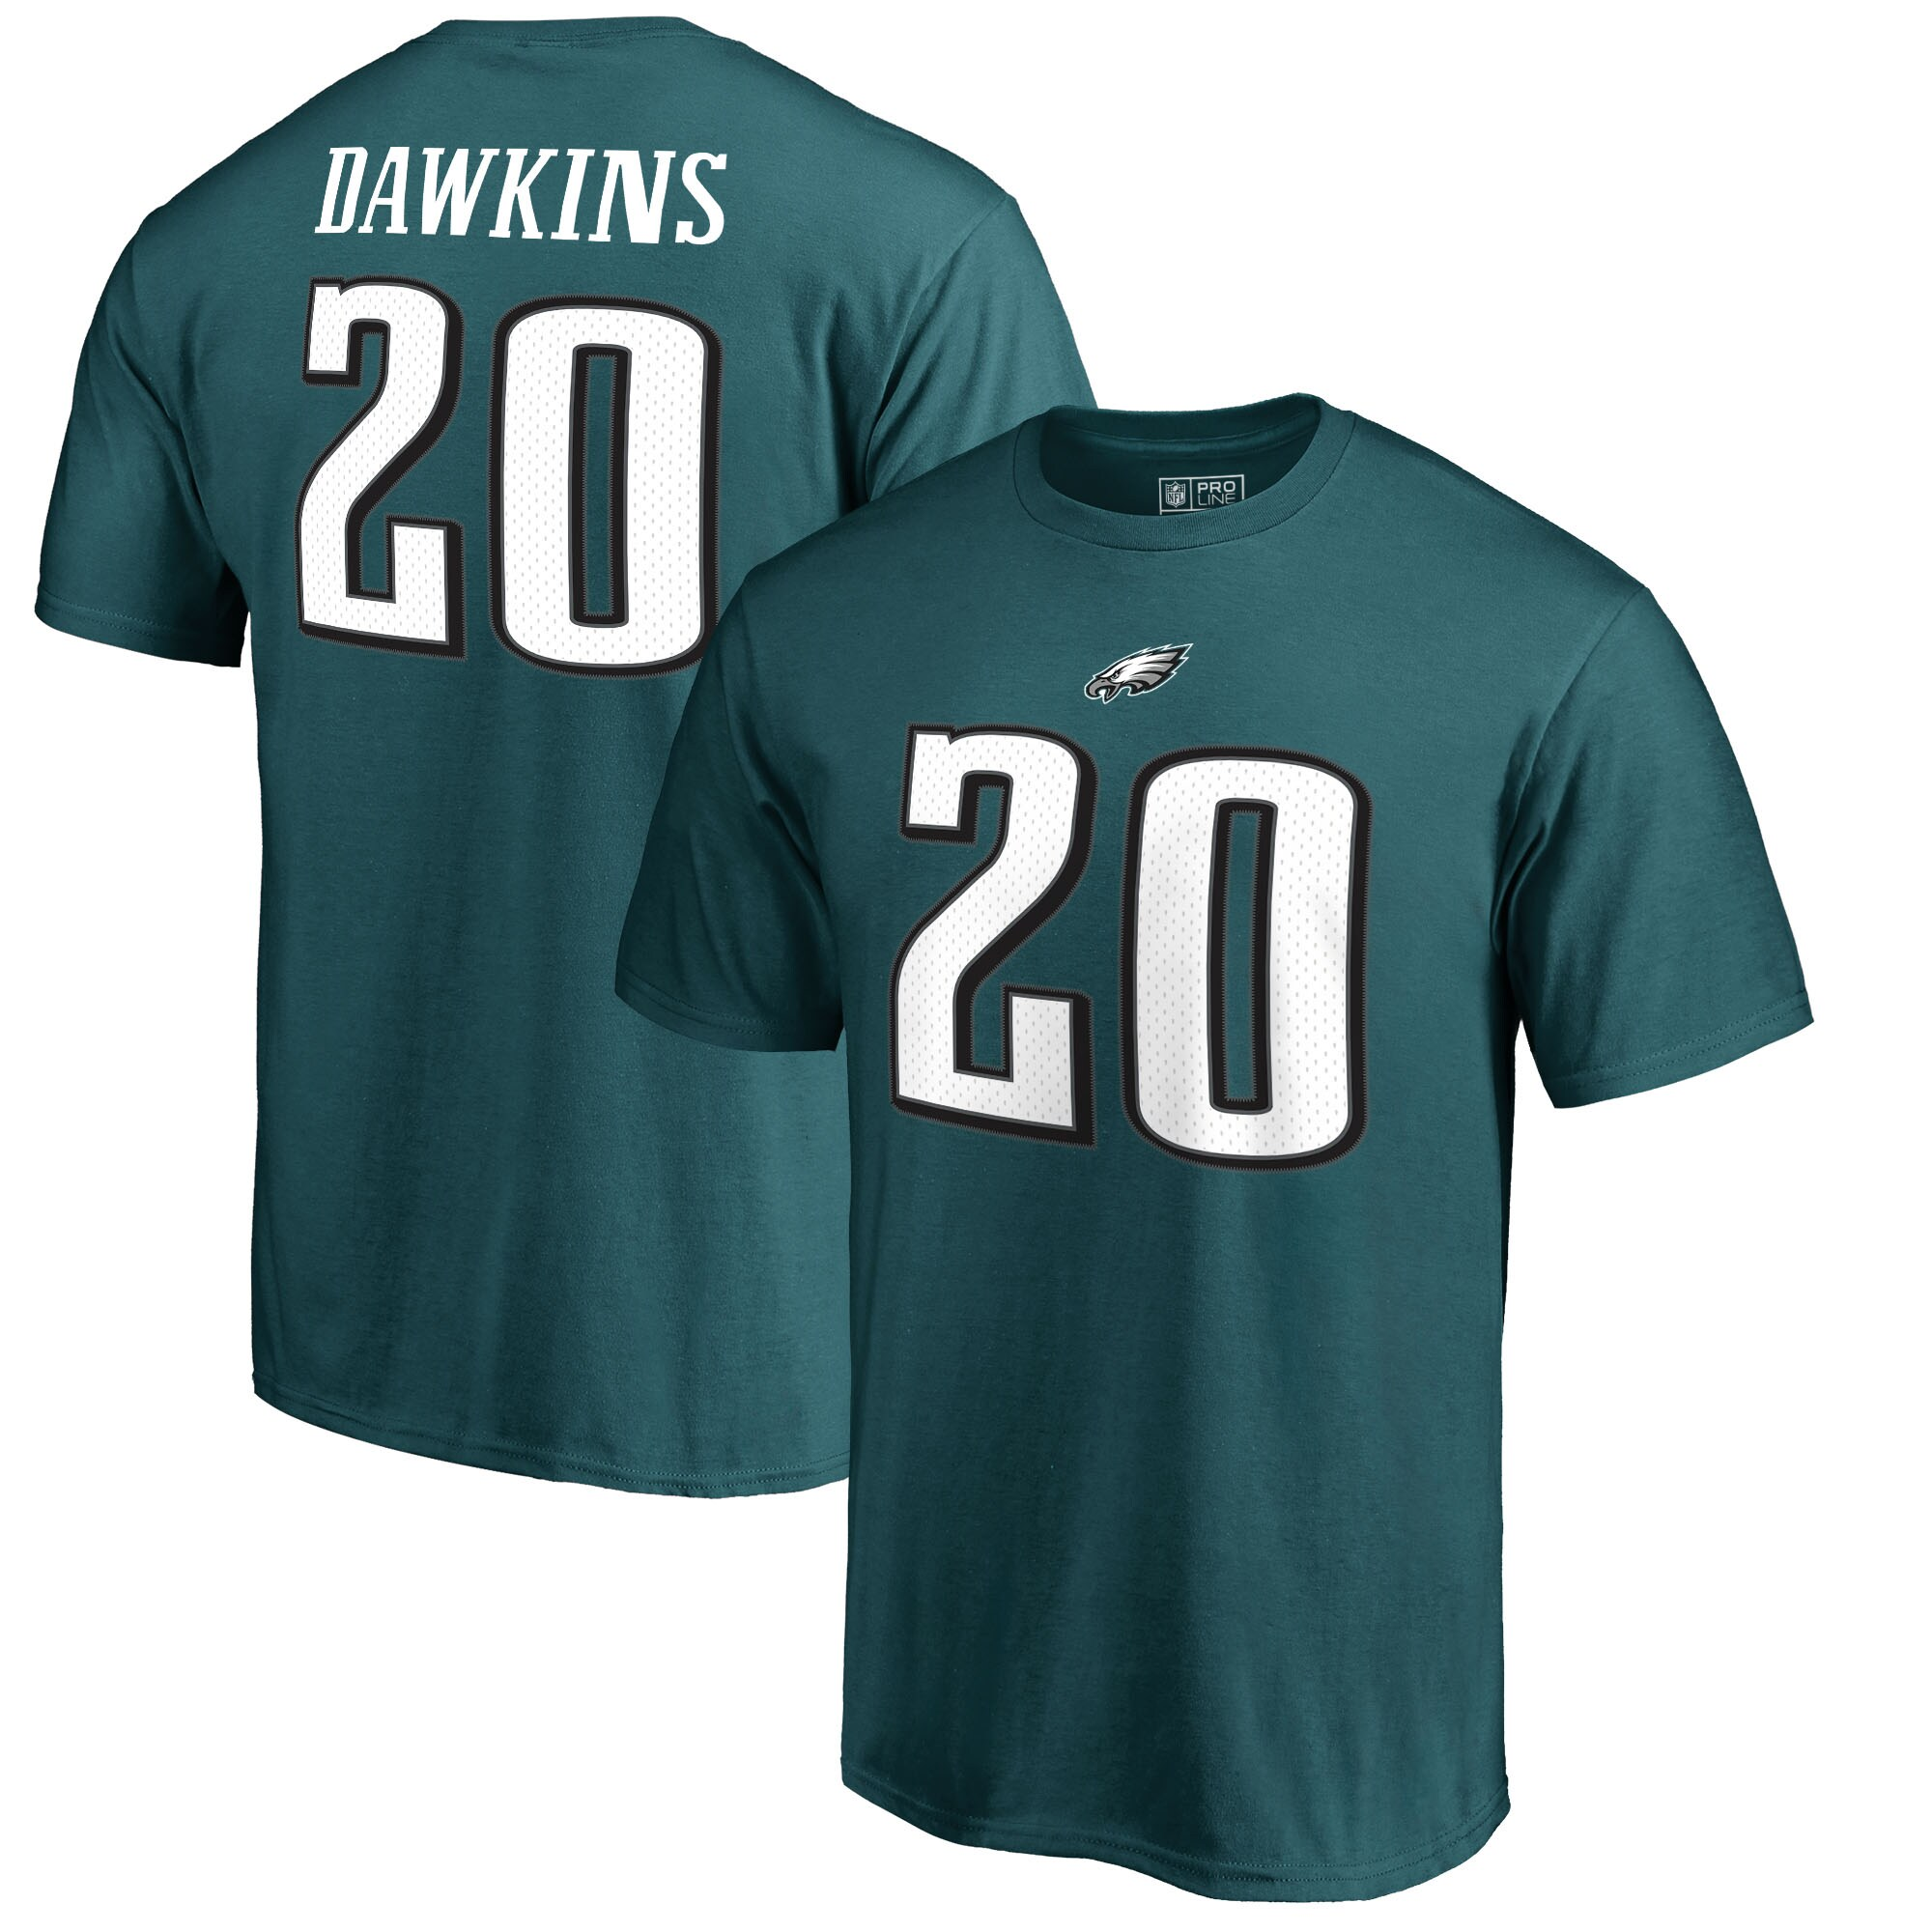 Brian Dawkins Philadelphia Eagles NFL Pro Line by Fanatics Branded Retired Player Authentic Stack Name & Number T-Shirt - Midnight Green